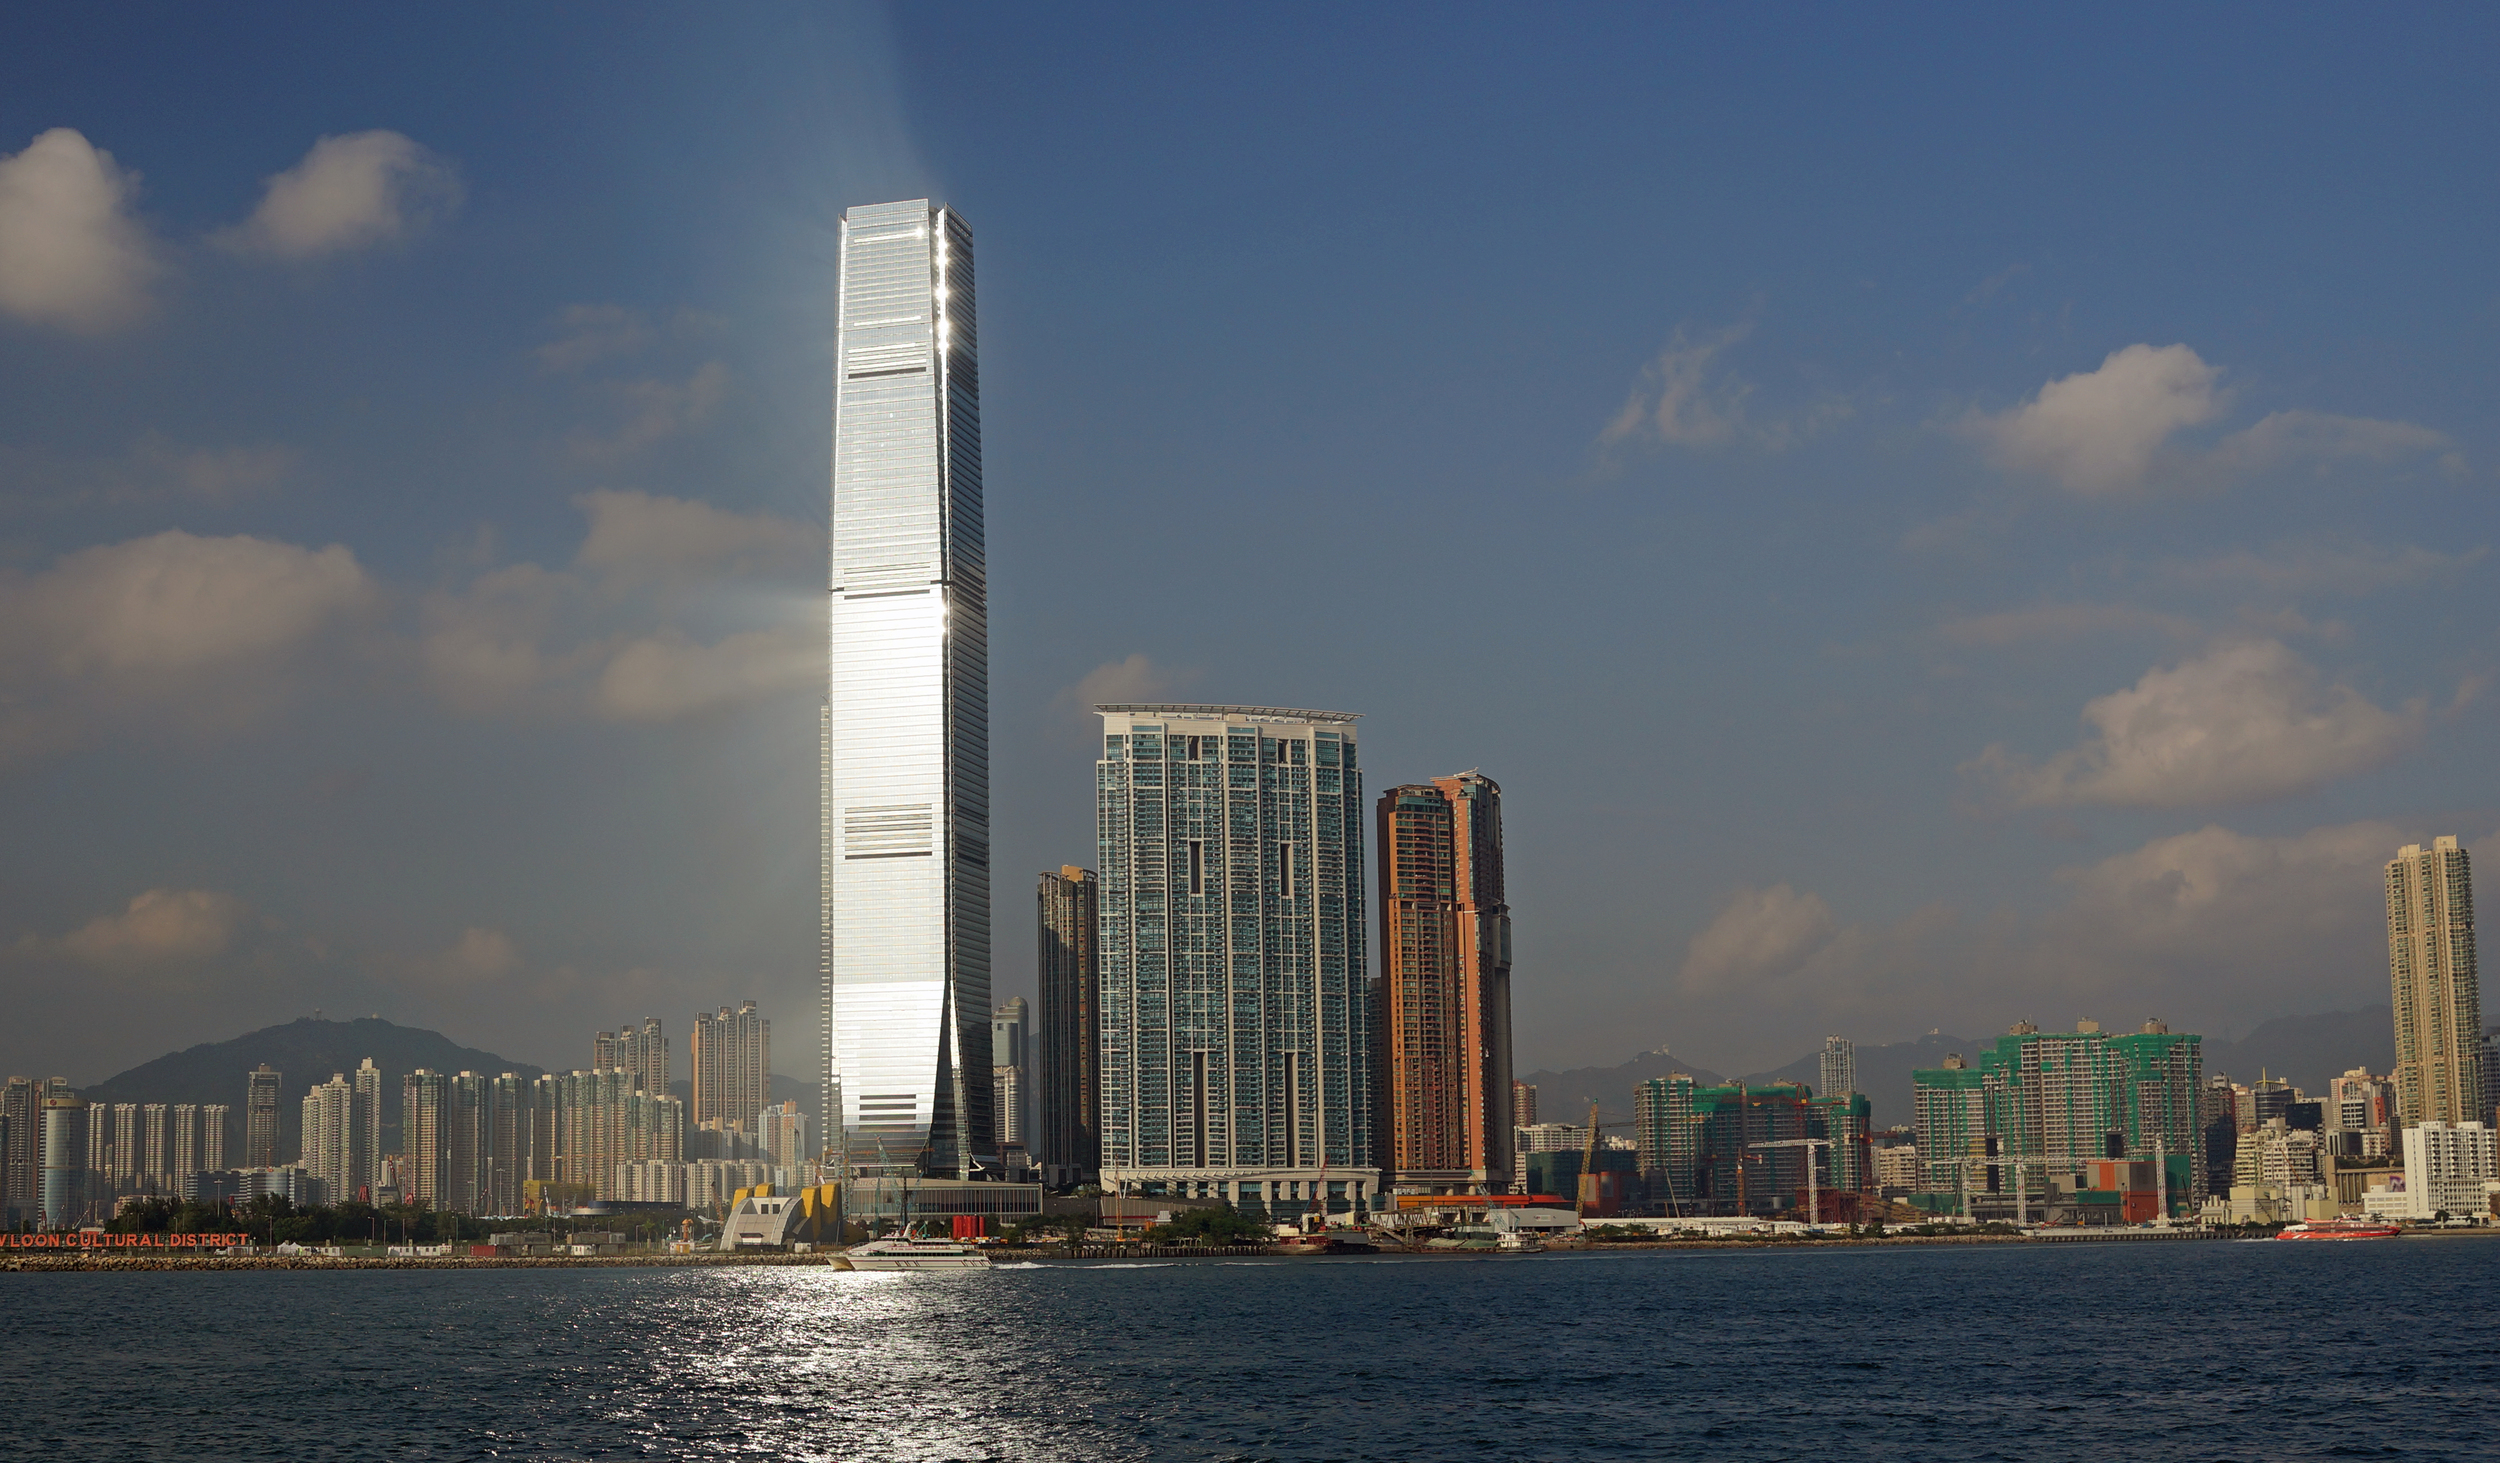 ICC at 118 floors is Hong Kong's tallest building - in the late afternoon it catches the sunshine and shines like a beacon... amazing